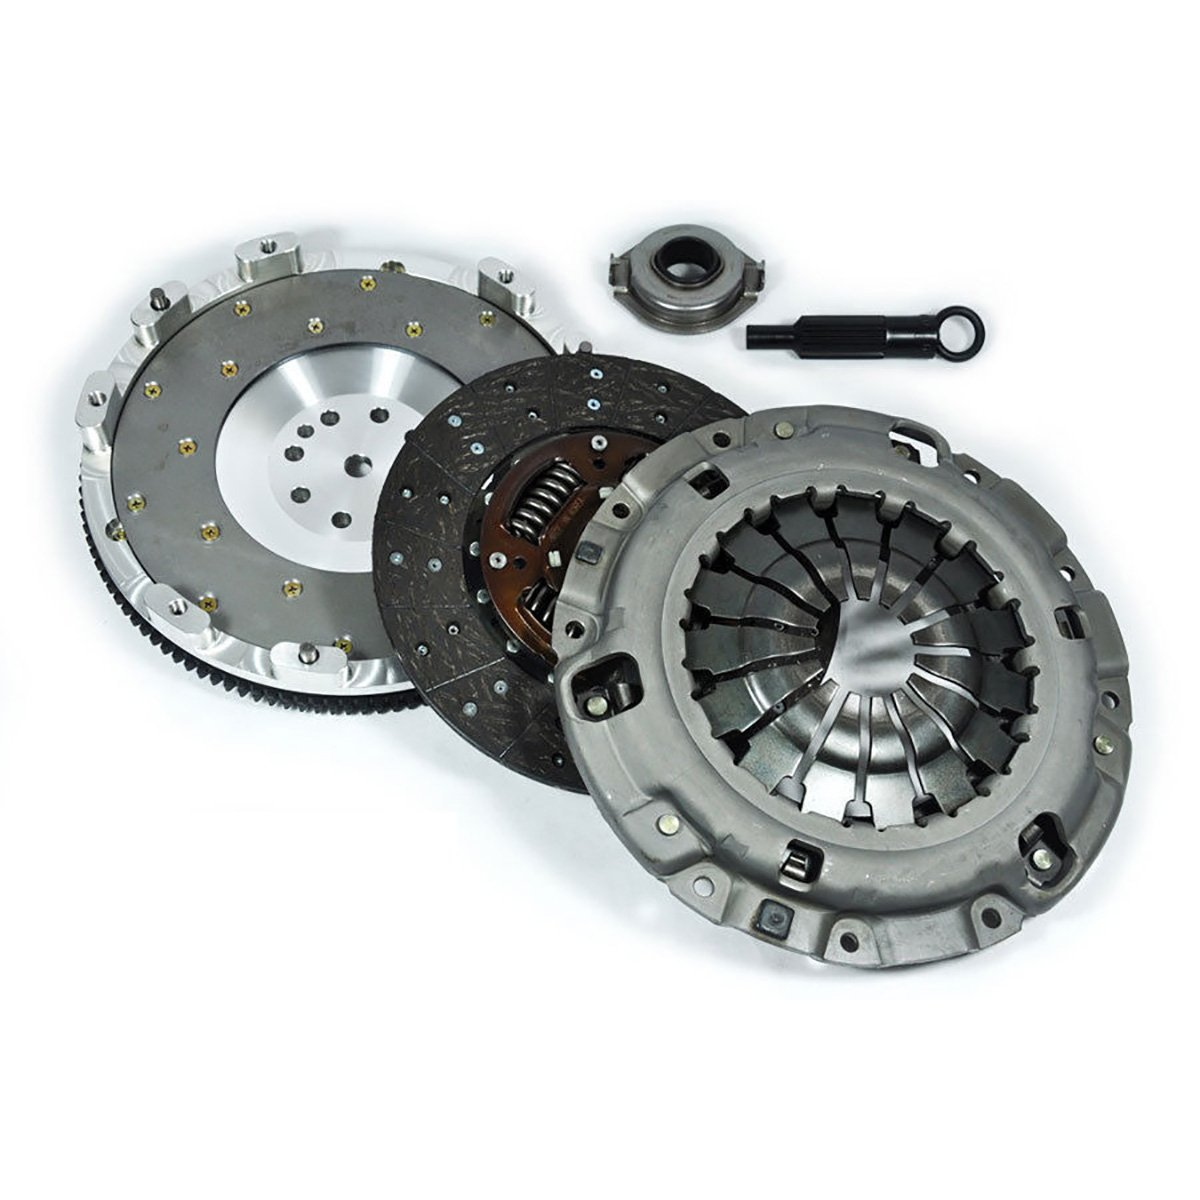 Amazon.com: EFT HD CLUTCH KIT+ALUMINUM RACE FLYWHEEL 3000GT VR-4 STEALTH R/T AWD 3.0L TURBO: Automotive